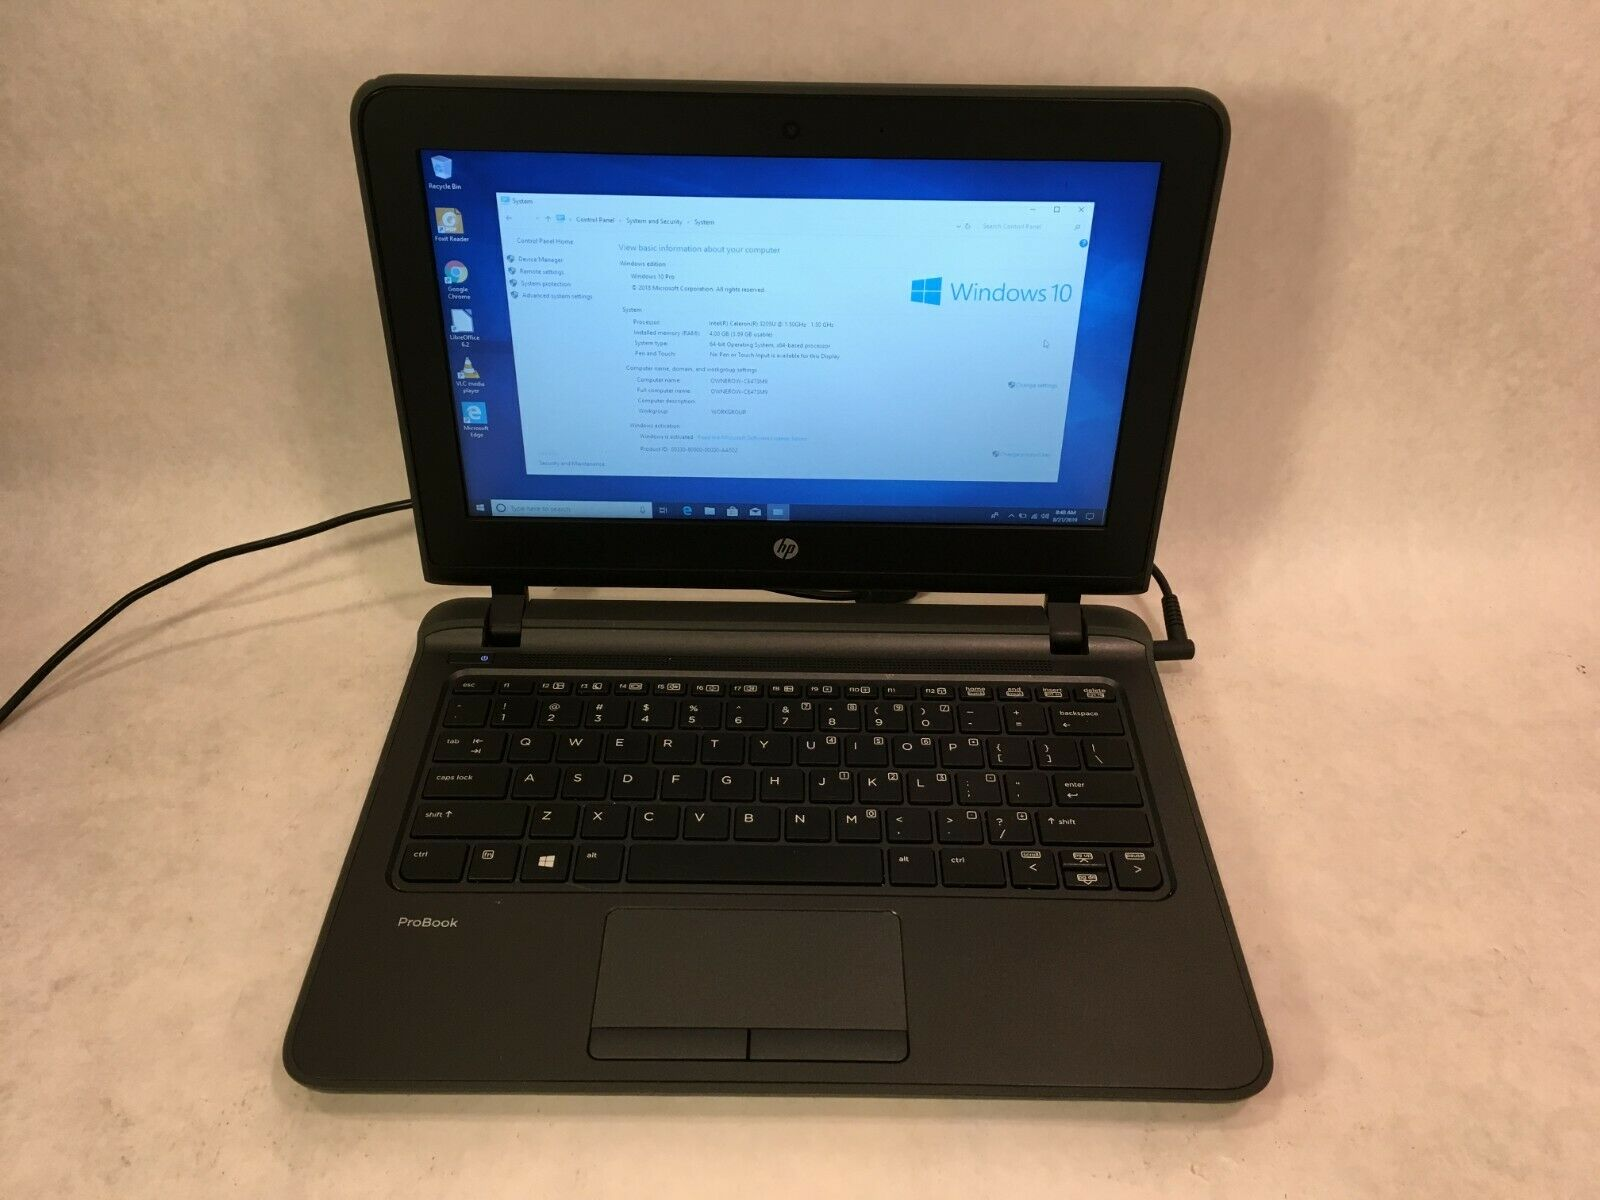 "Laptop Windows - HP ProBook 11 G1 11.6"" Laptop Intel 1.5GHz / 4GB RAM / 120GB SSD / Windows 10"